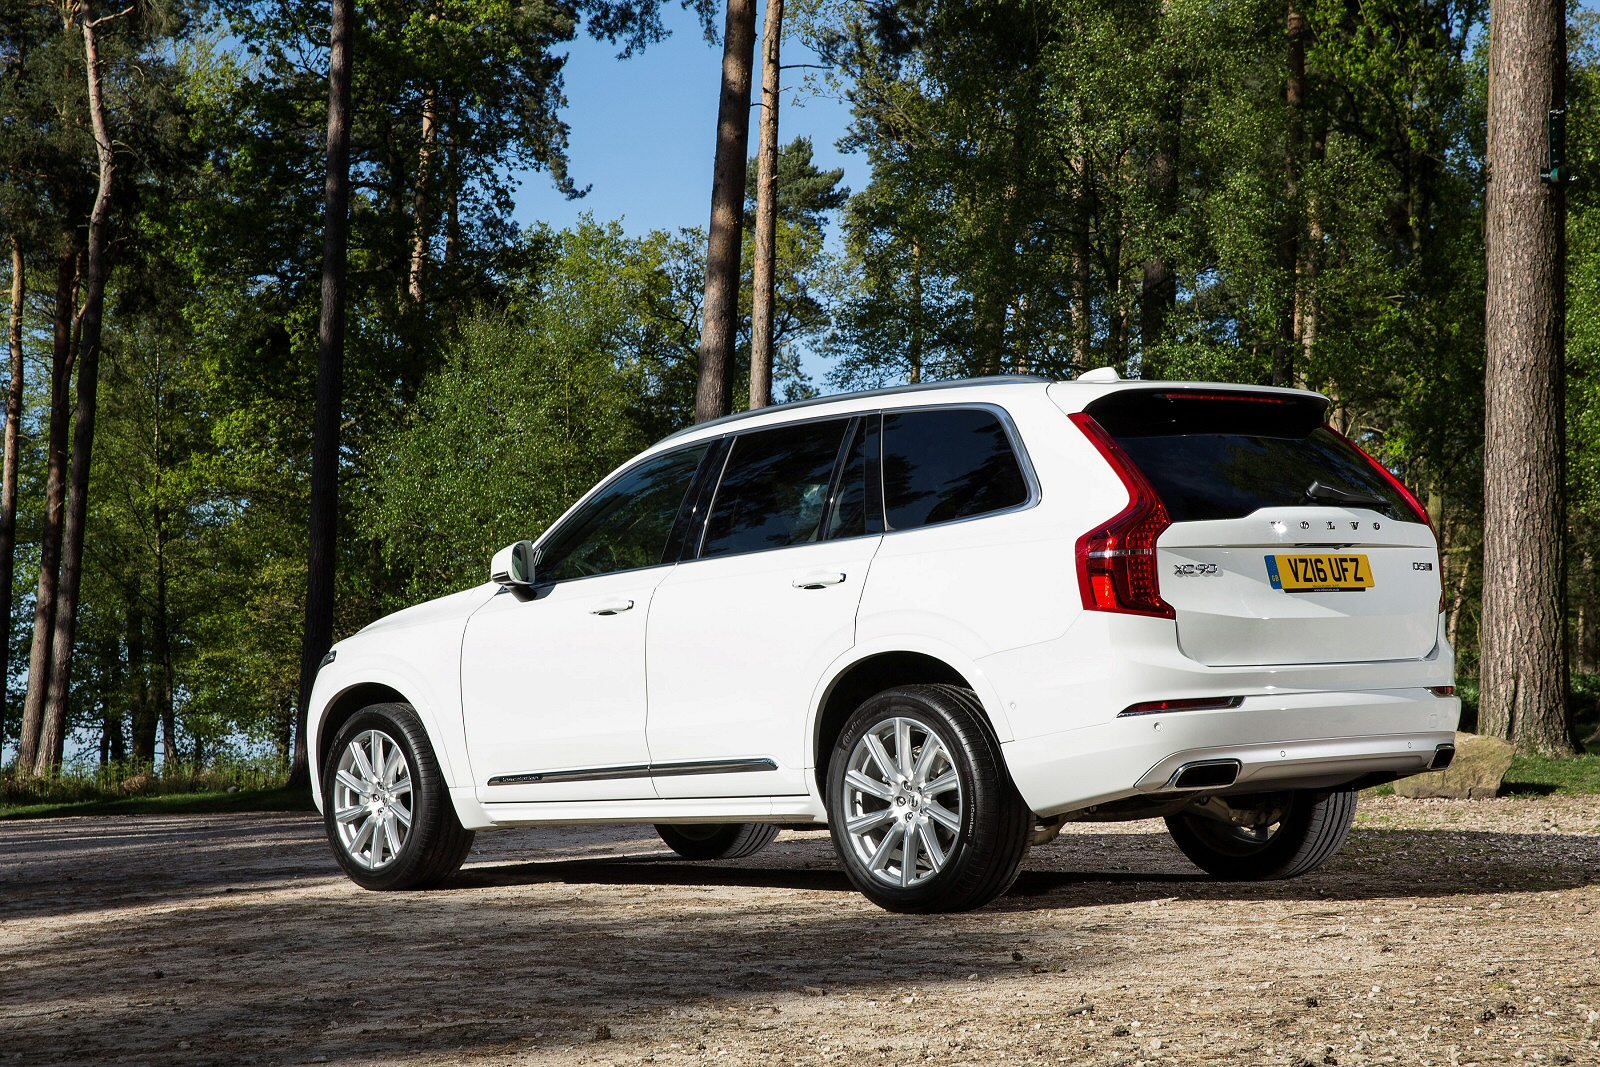 new volvo xc90 2 0 d5 powerpulse inscription 5dr awd. Black Bedroom Furniture Sets. Home Design Ideas